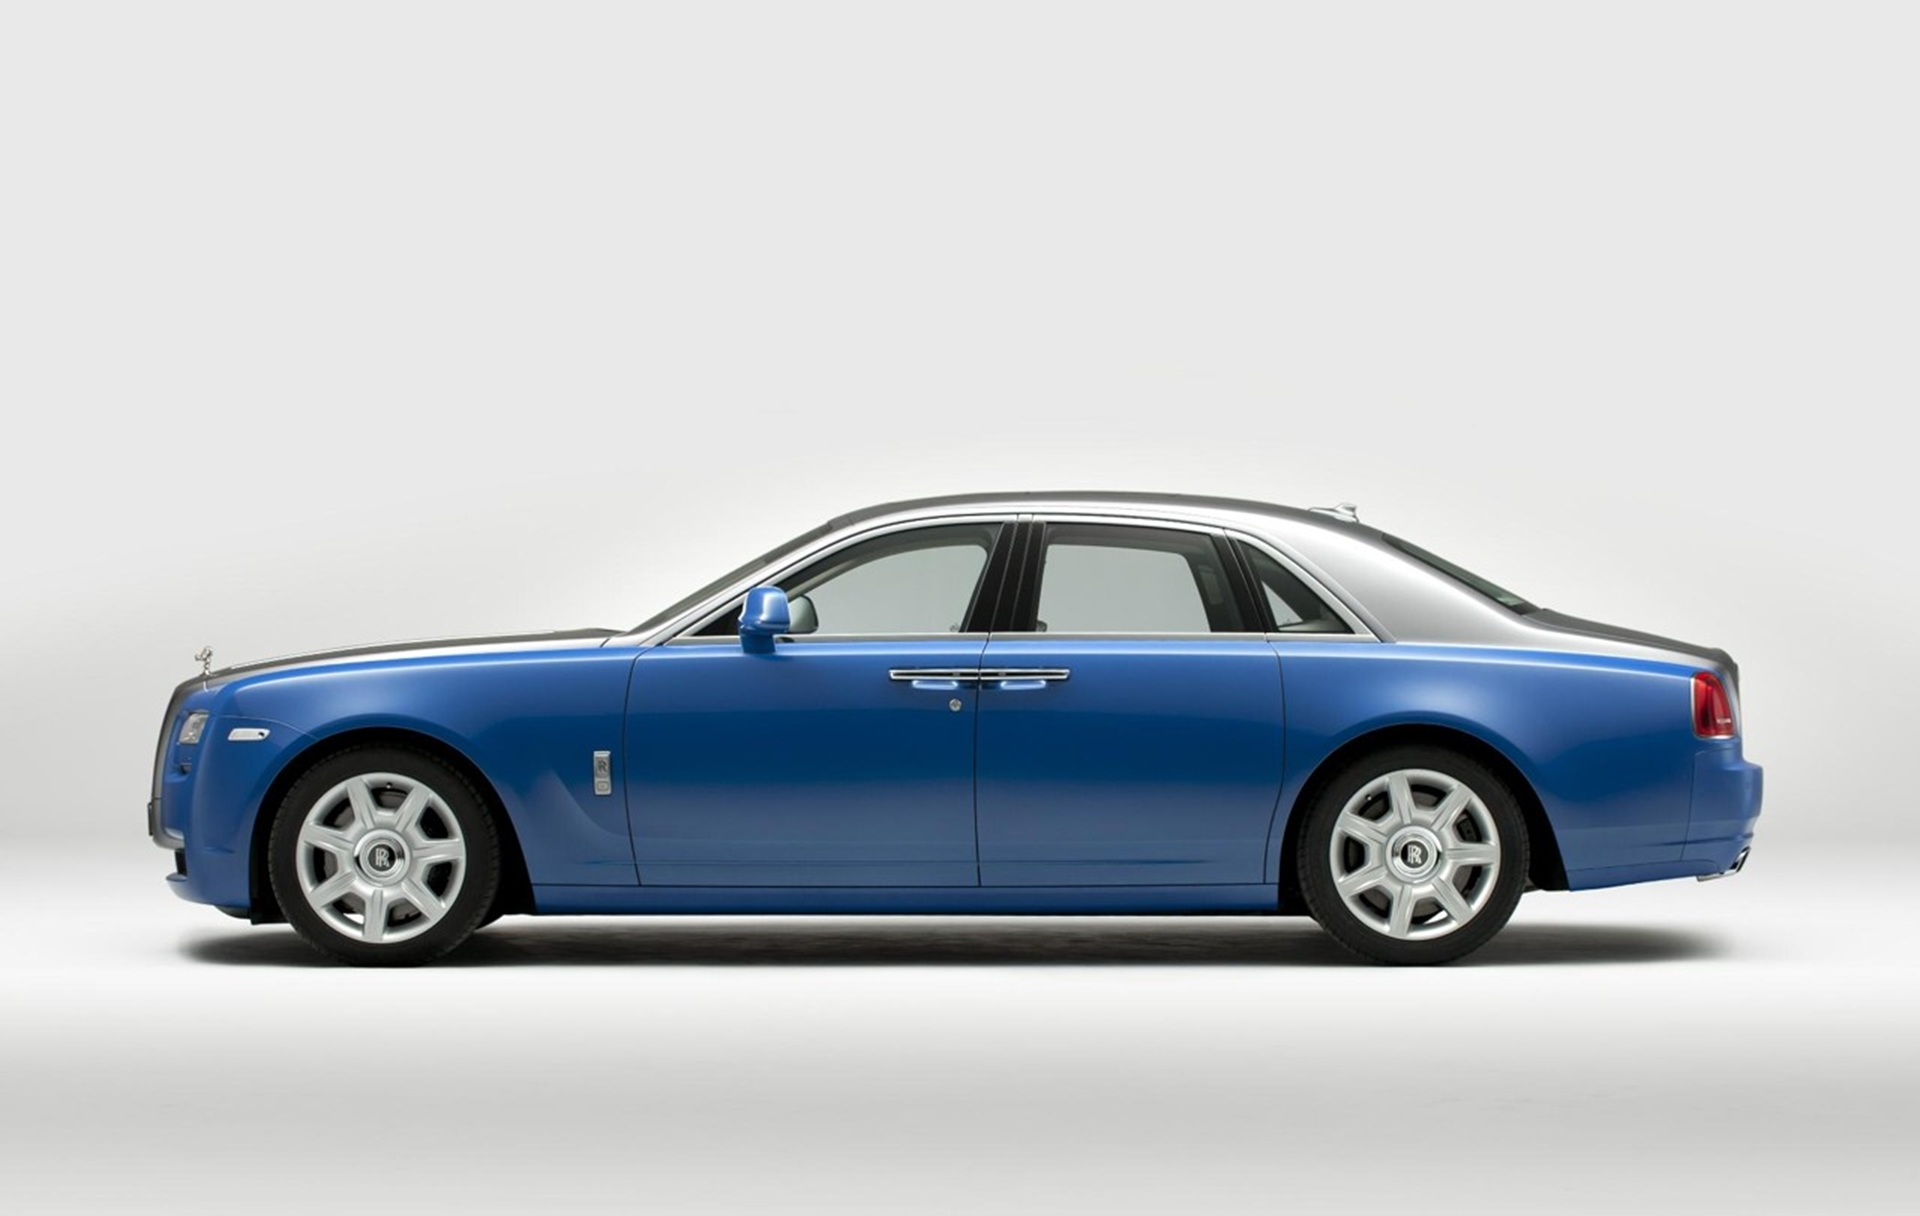 Rolls royce unveils art deco inspired cars at paris motor show for Rolls royce motor cars